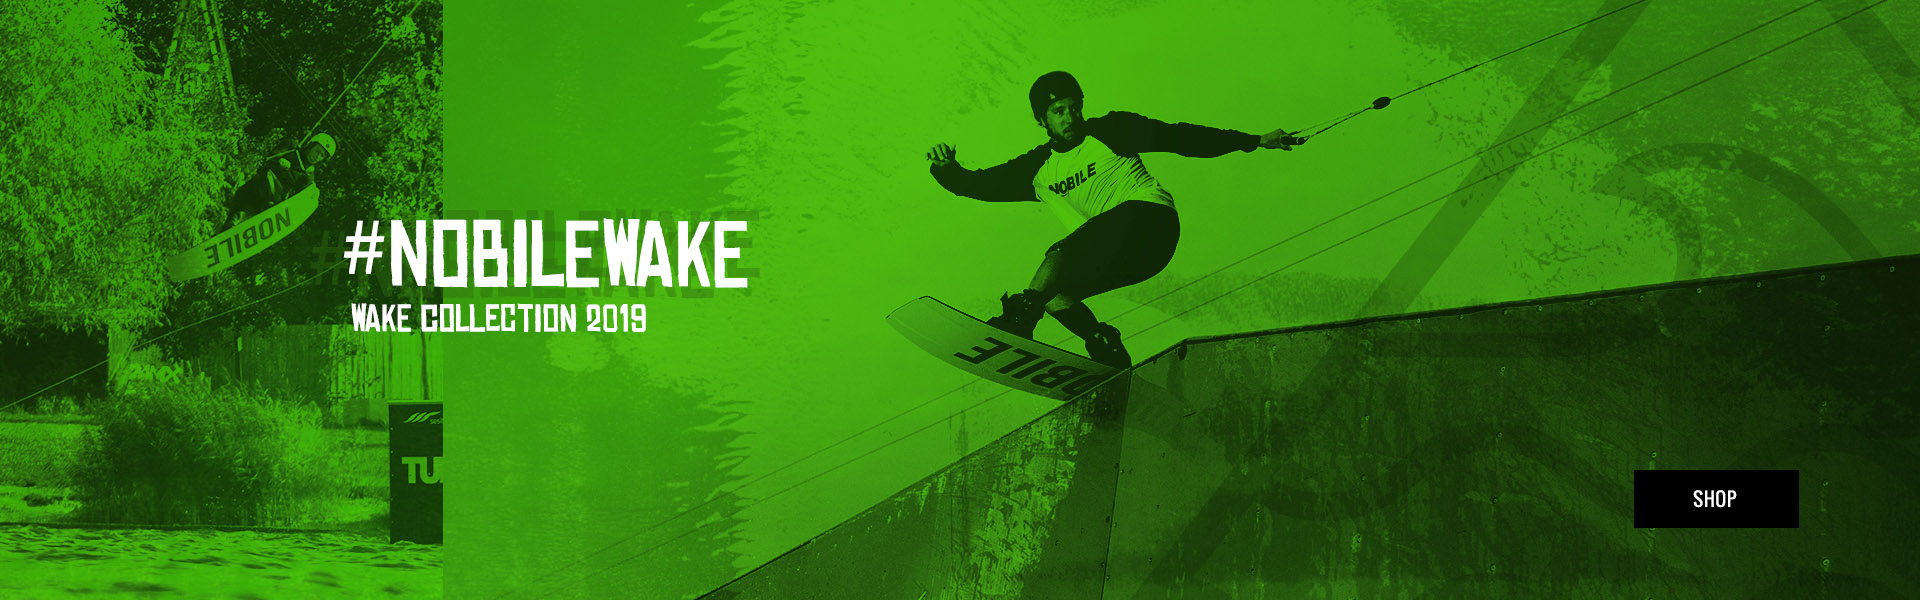 Wakeboard Collection 2019